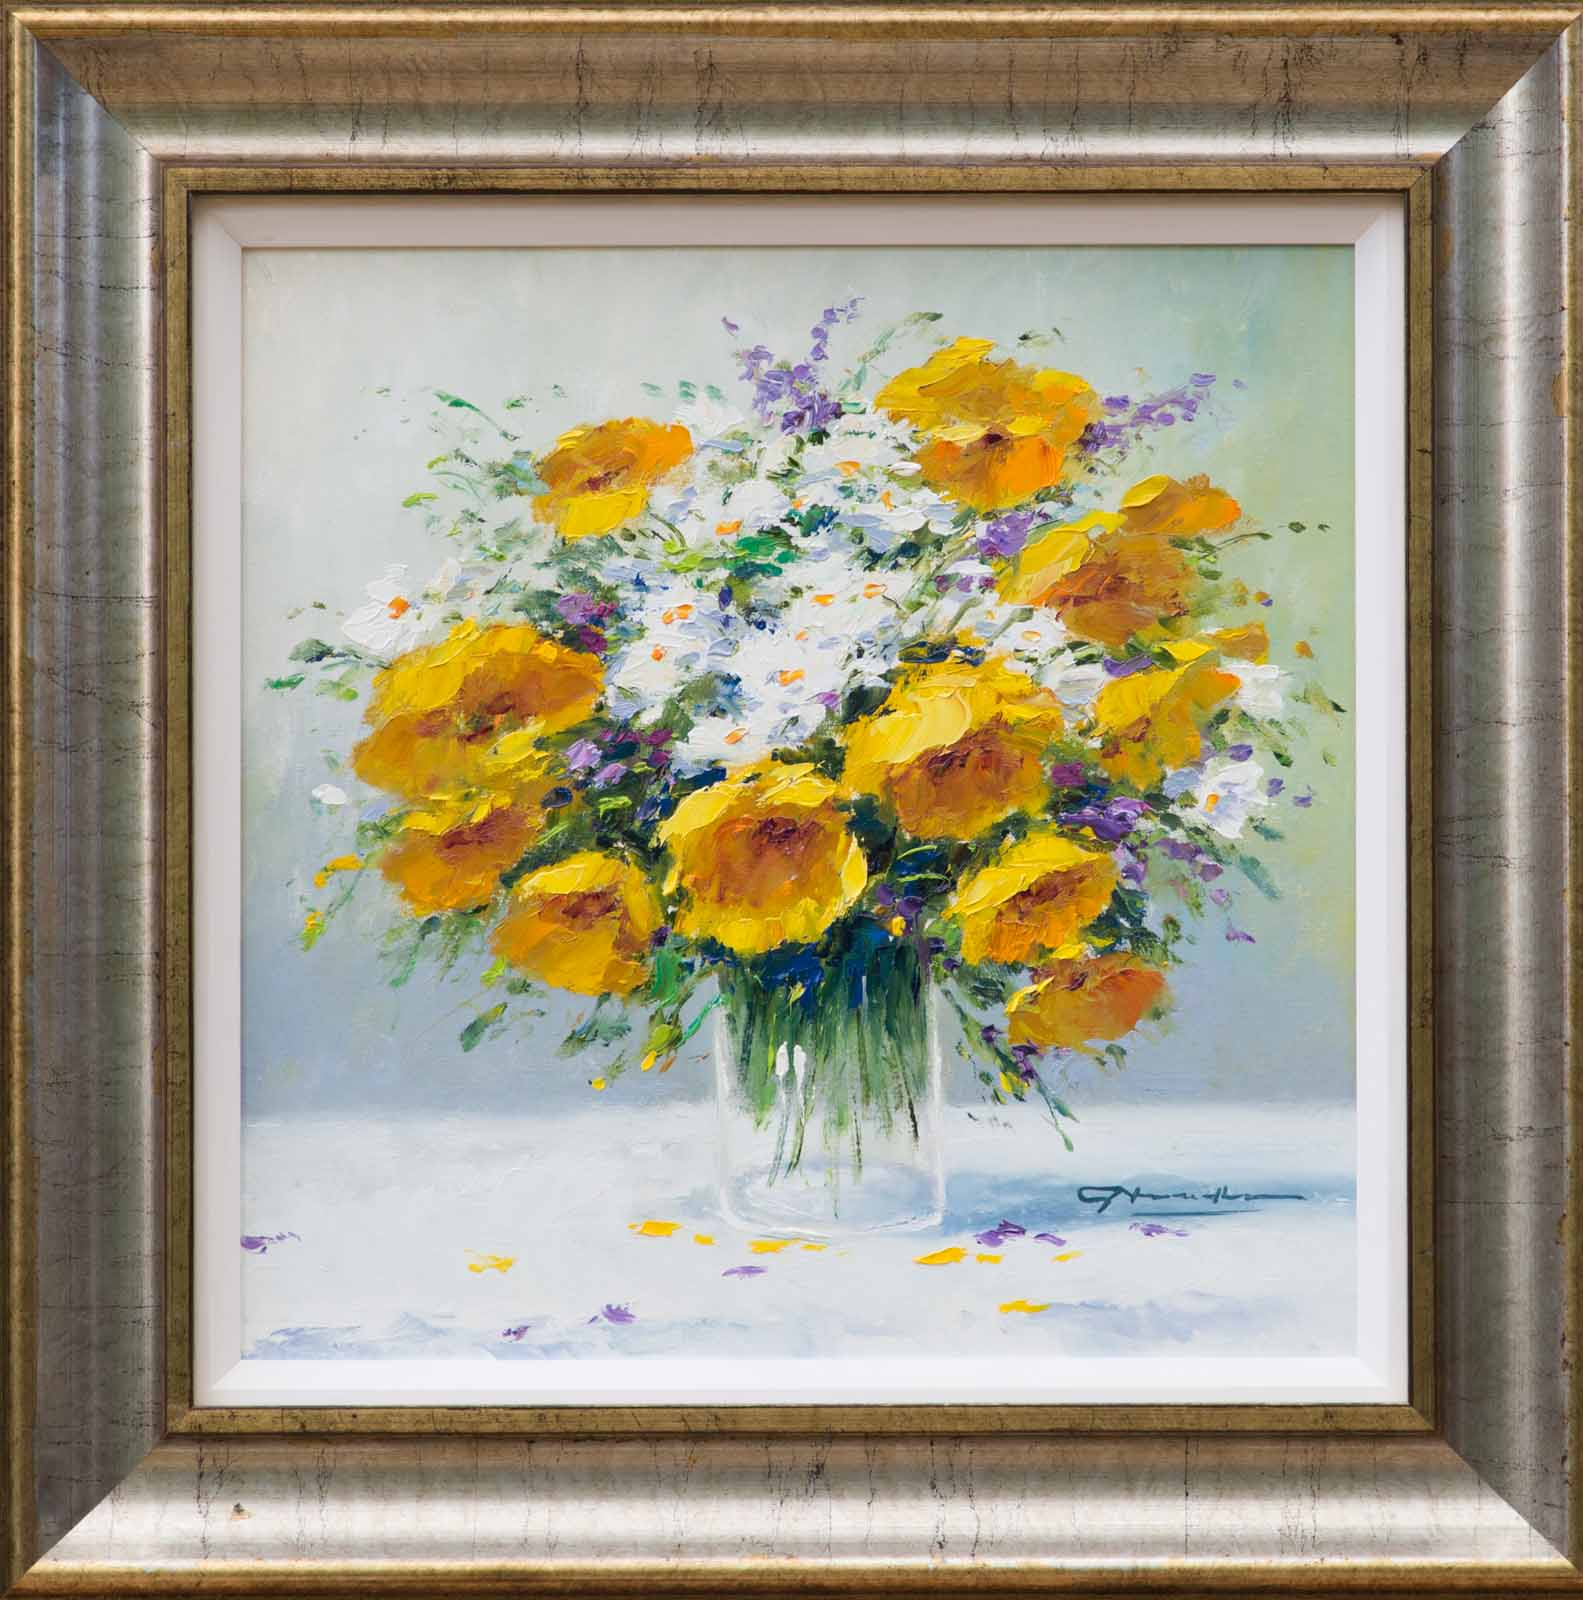 Bouquet of Yellows and Whites, Gerhard Nesvadba